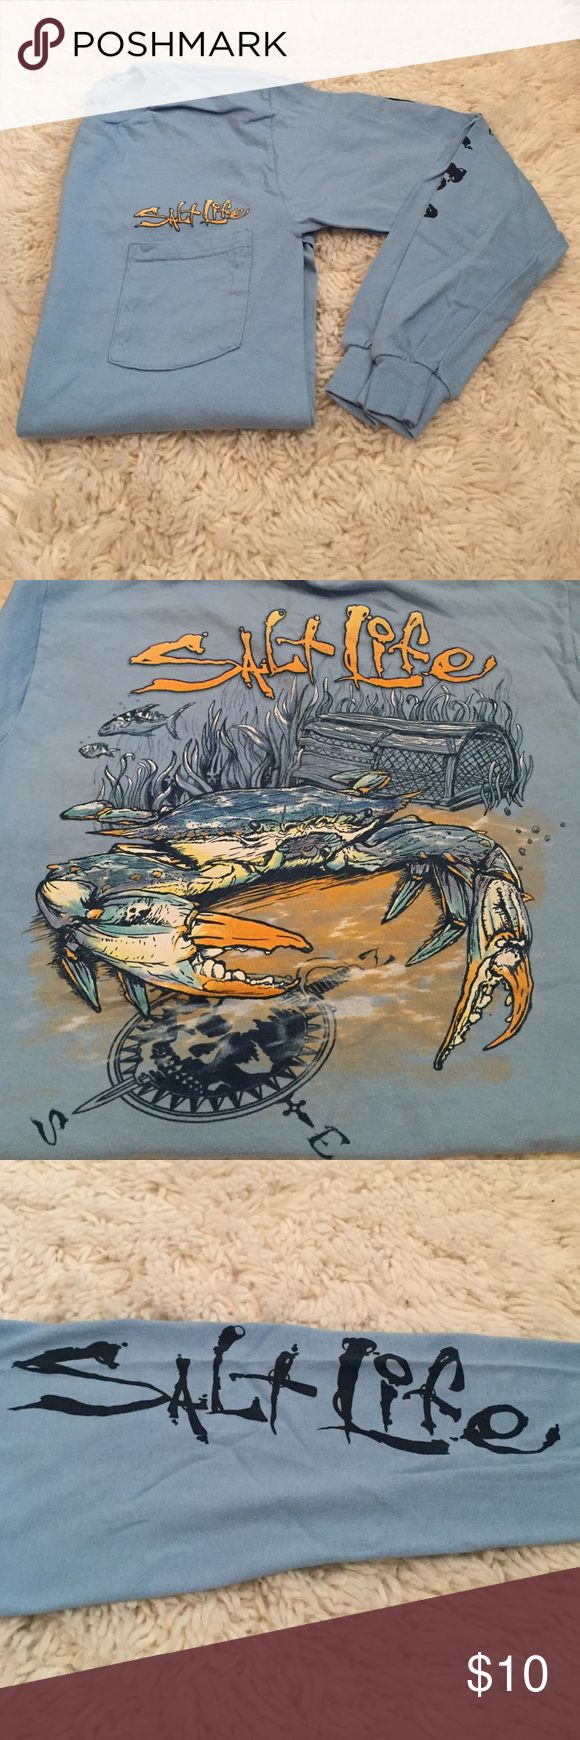 Long sleeve Salt Life T-Shirt Light blue; never worn. Great for a throw on and go outfit! Salt life is written on the right sleeve. 100% cotton. Salt Life Shirts Tees - Long Sleeve